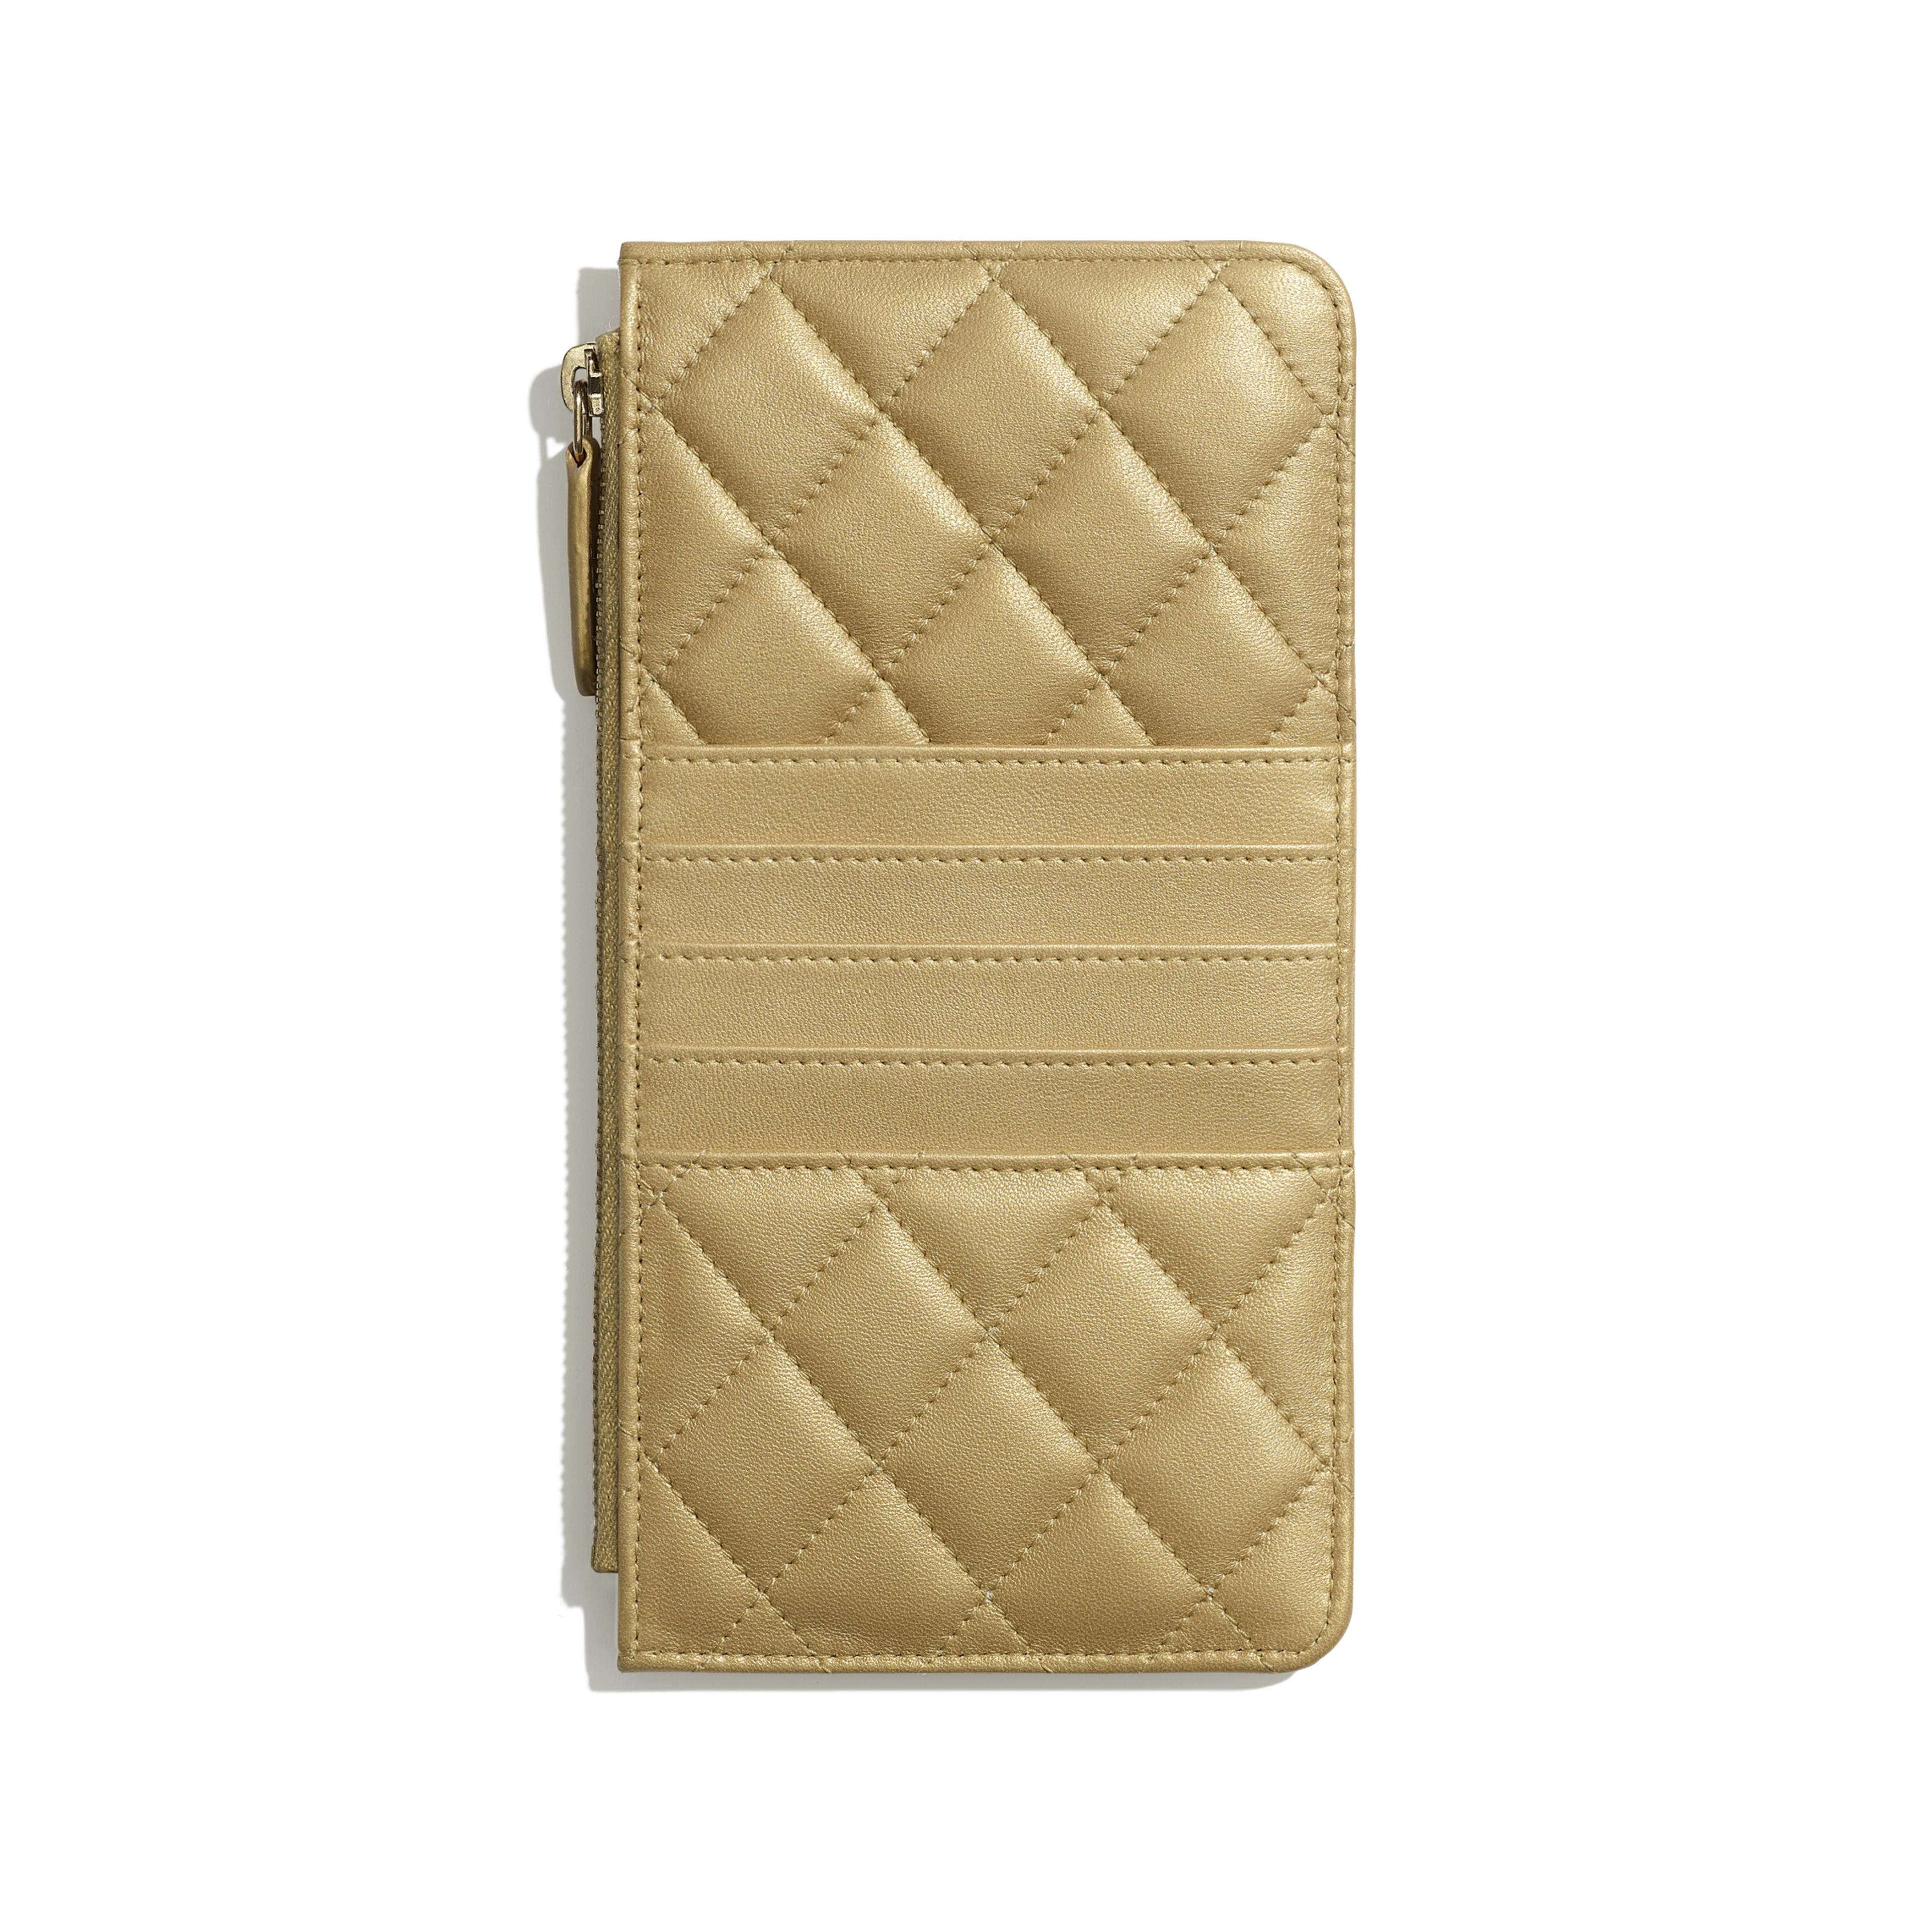 Pouch - Gold - Metallic Lambskin & Gold-Tone Metal - Alternative view - see full sized version